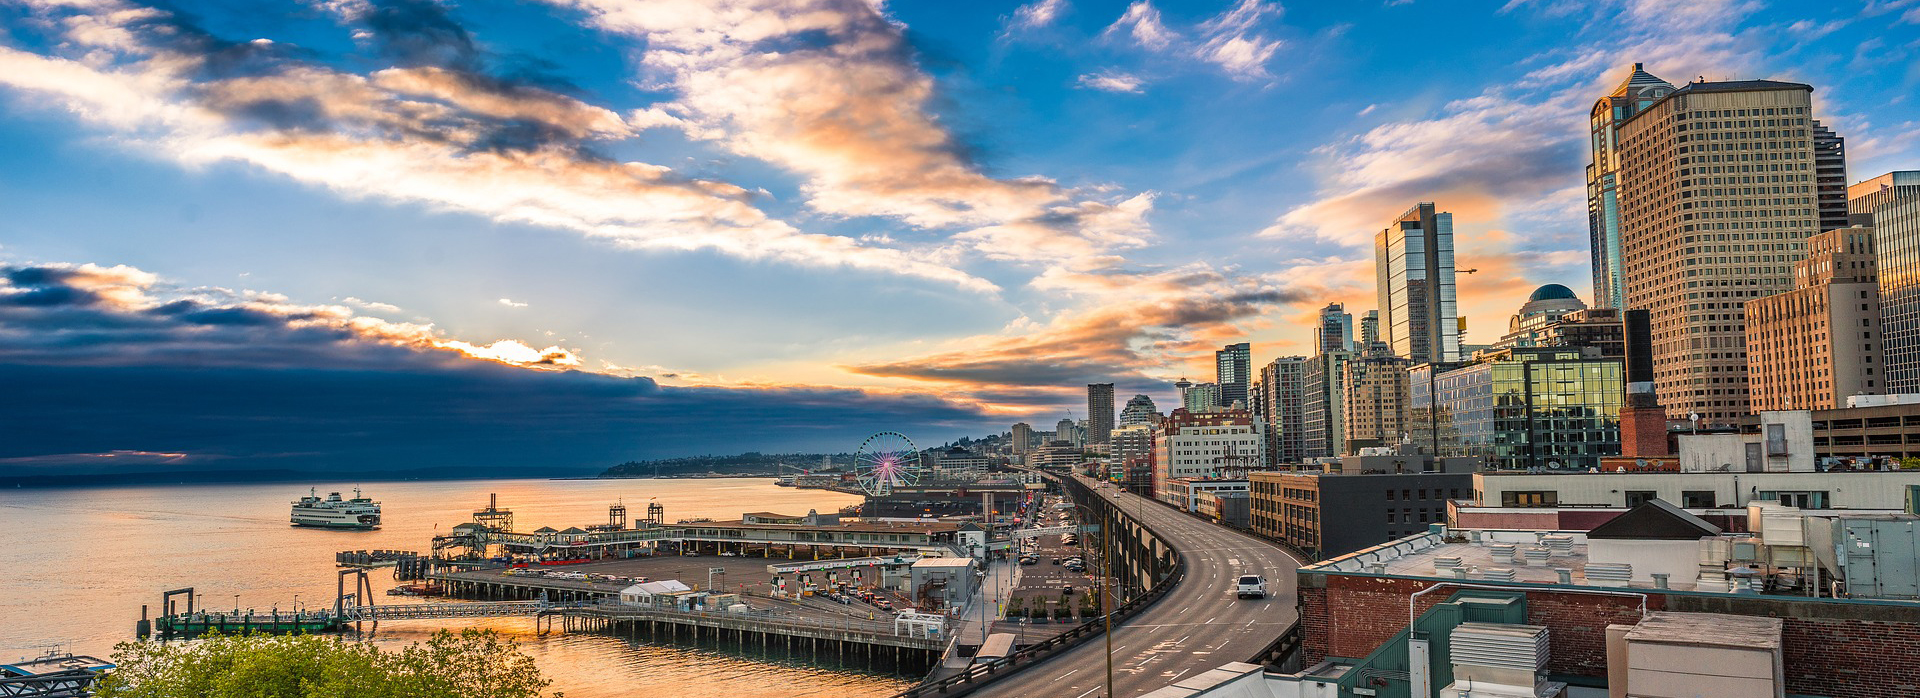 Cityscape in Seattle, Washington | Breast Cancer Car Donations